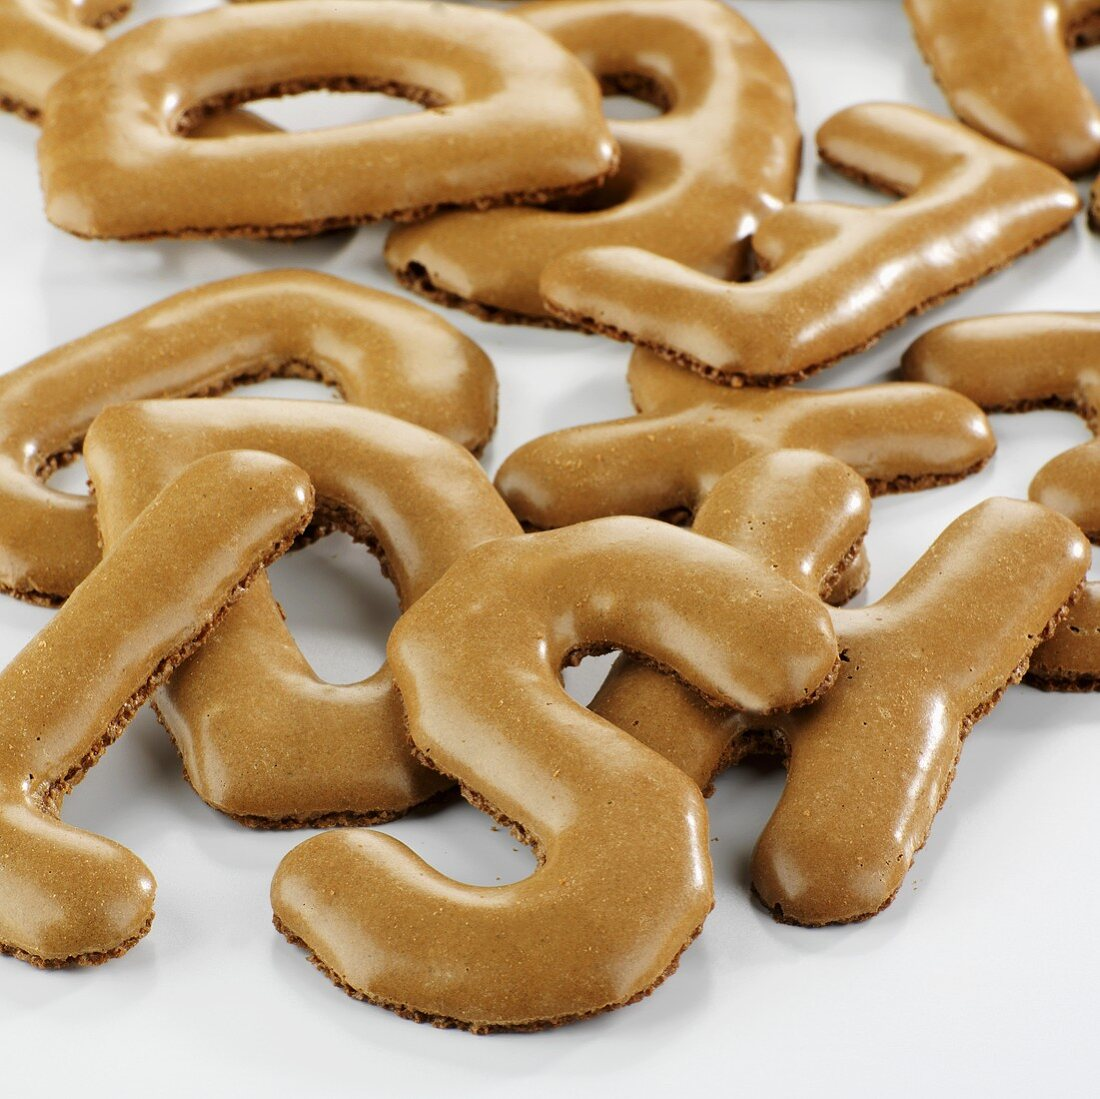 Russisch Brot ('Russian bread', letter biscuits)